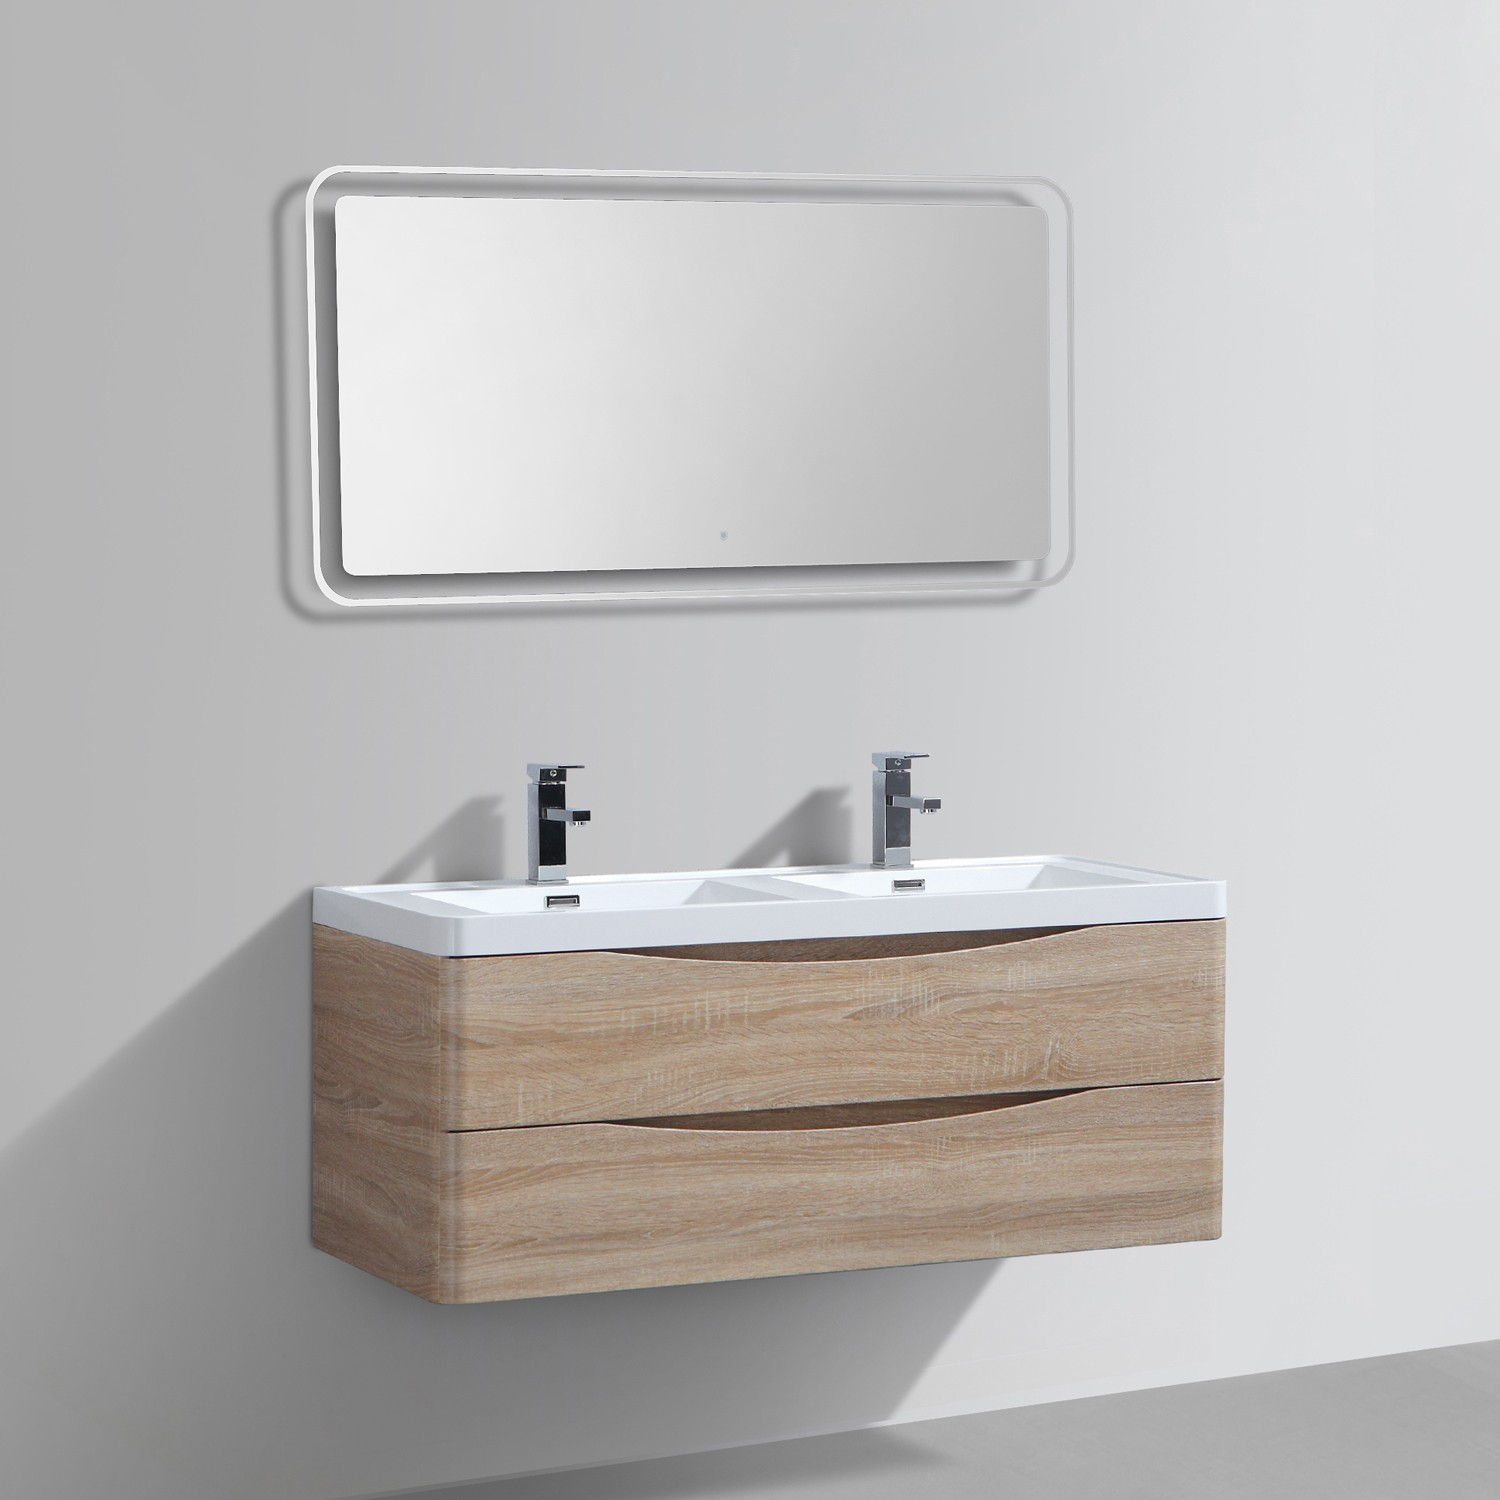 miroir a led fabulous miroir led ikea affordable salle de bain luminaire u miroir led with. Black Bedroom Furniture Sets. Home Design Ideas